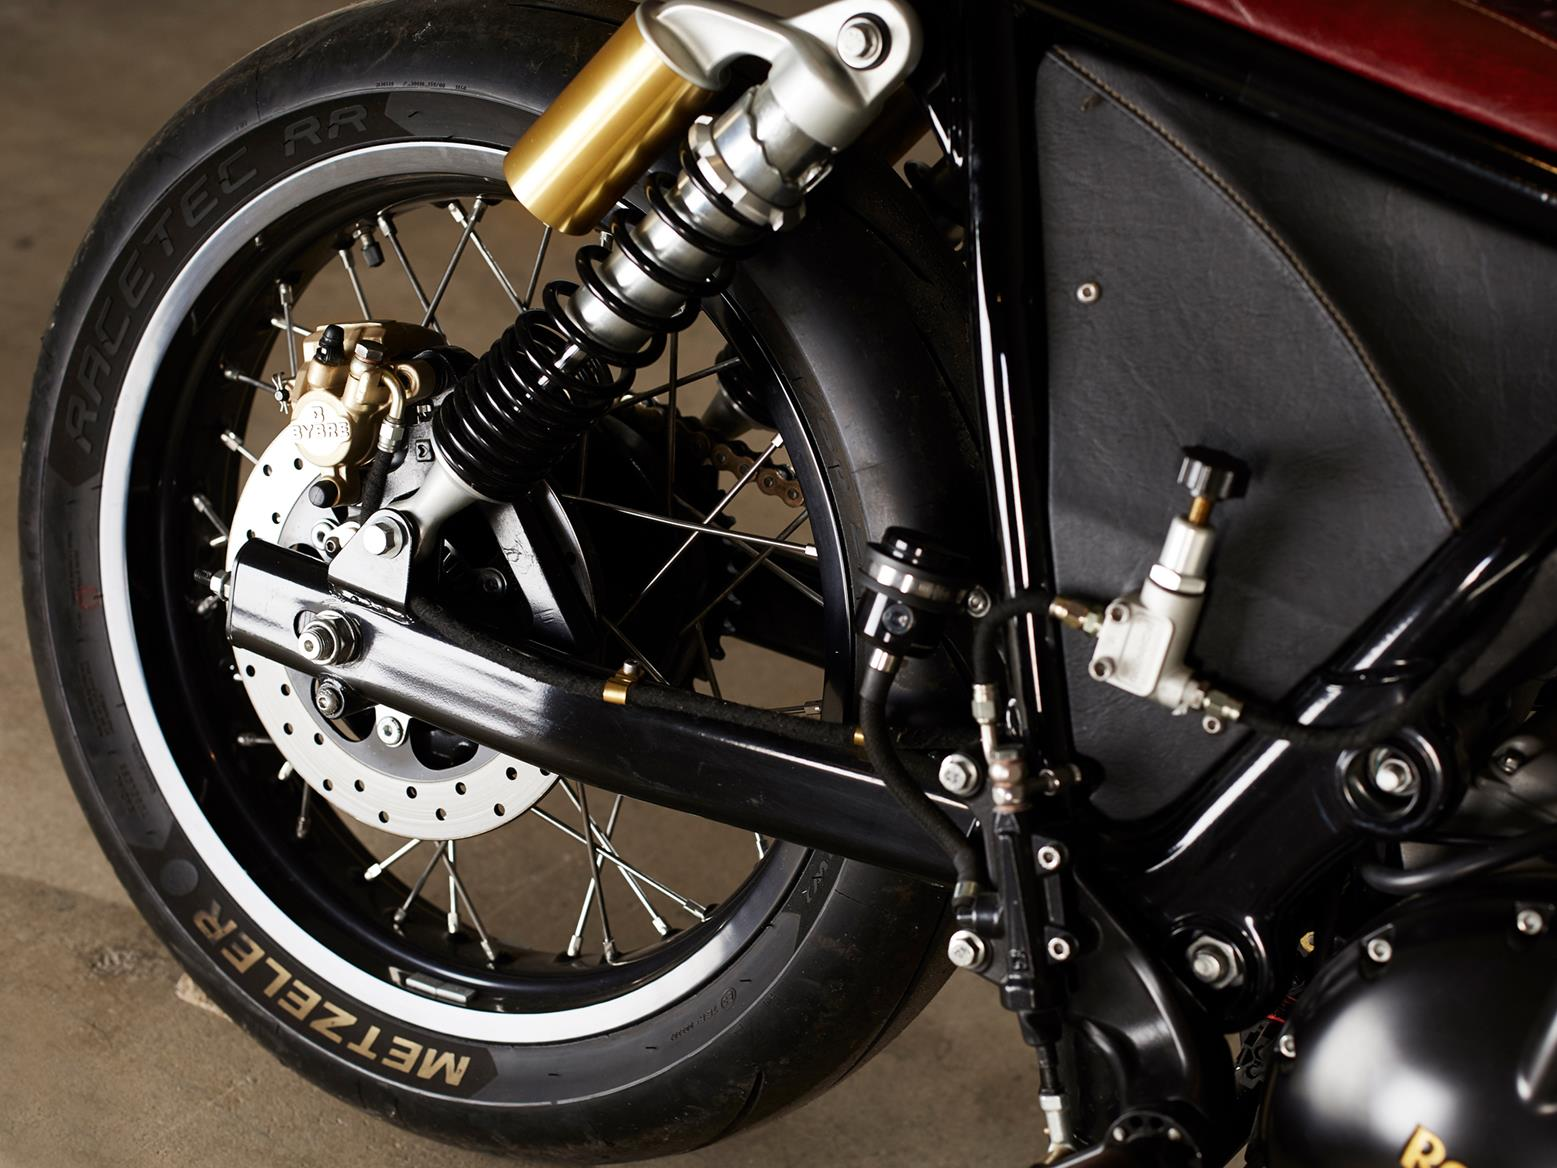 The rear wheel assembly of the 2019 OEM custom Royal Enfield Interceptor 650 twin